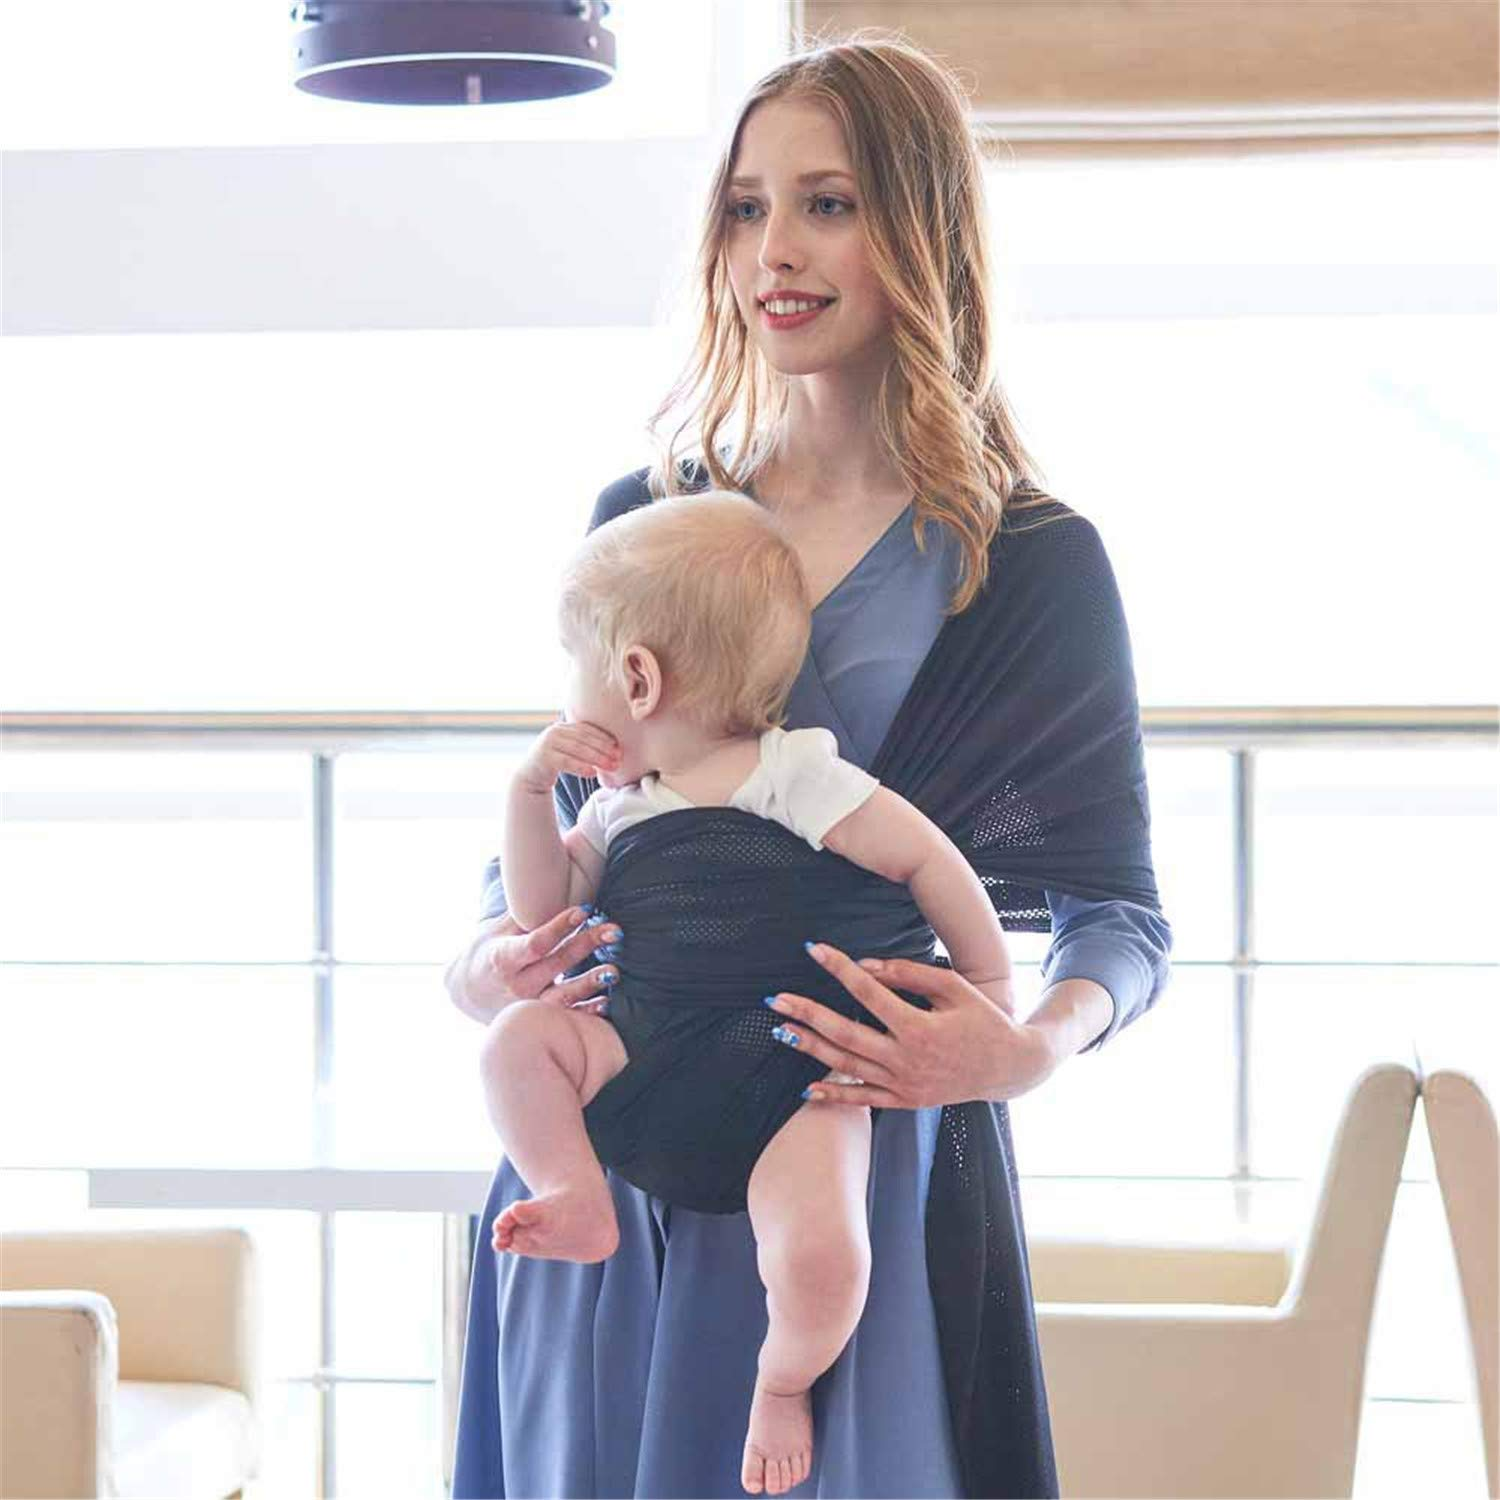 BABIFIS Baby Carrier Sling For Newborns Summer Breathable Wrap Soft Infant Wrap Hipseat Breastfeed Comfortable Nursing Cover